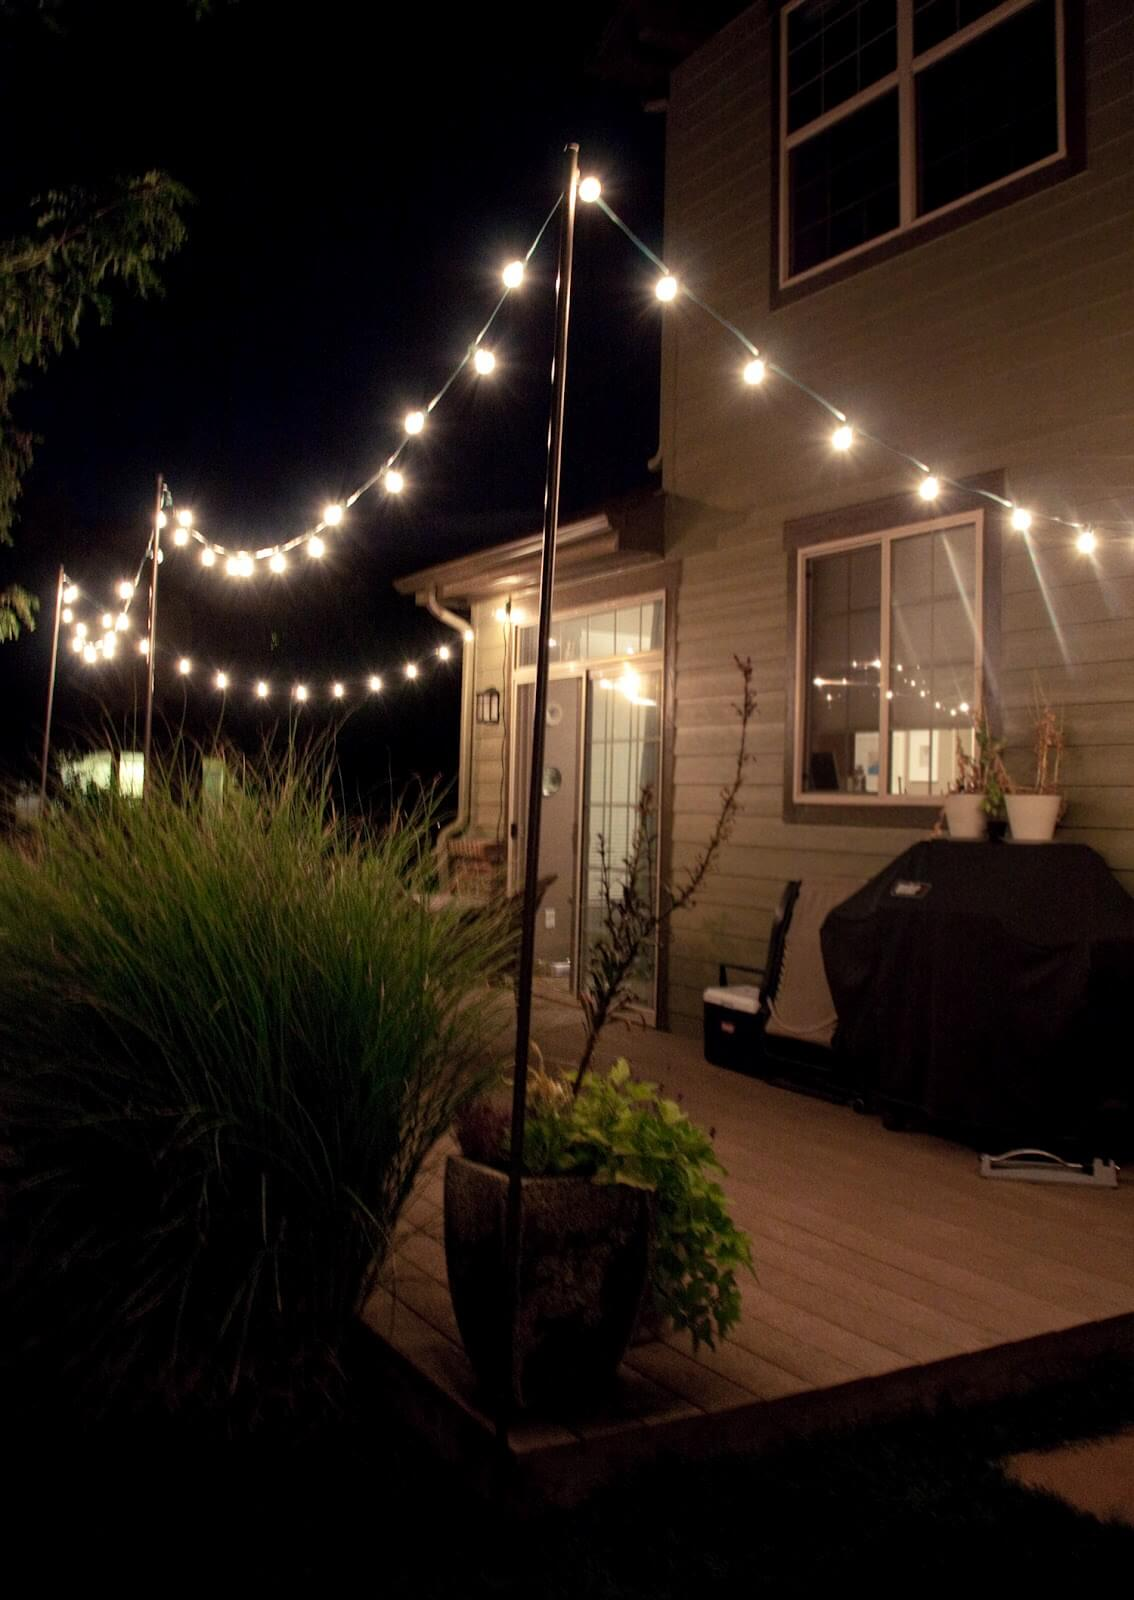 backyard lighting ideas year-round backyard deck string lights FZYOIUU